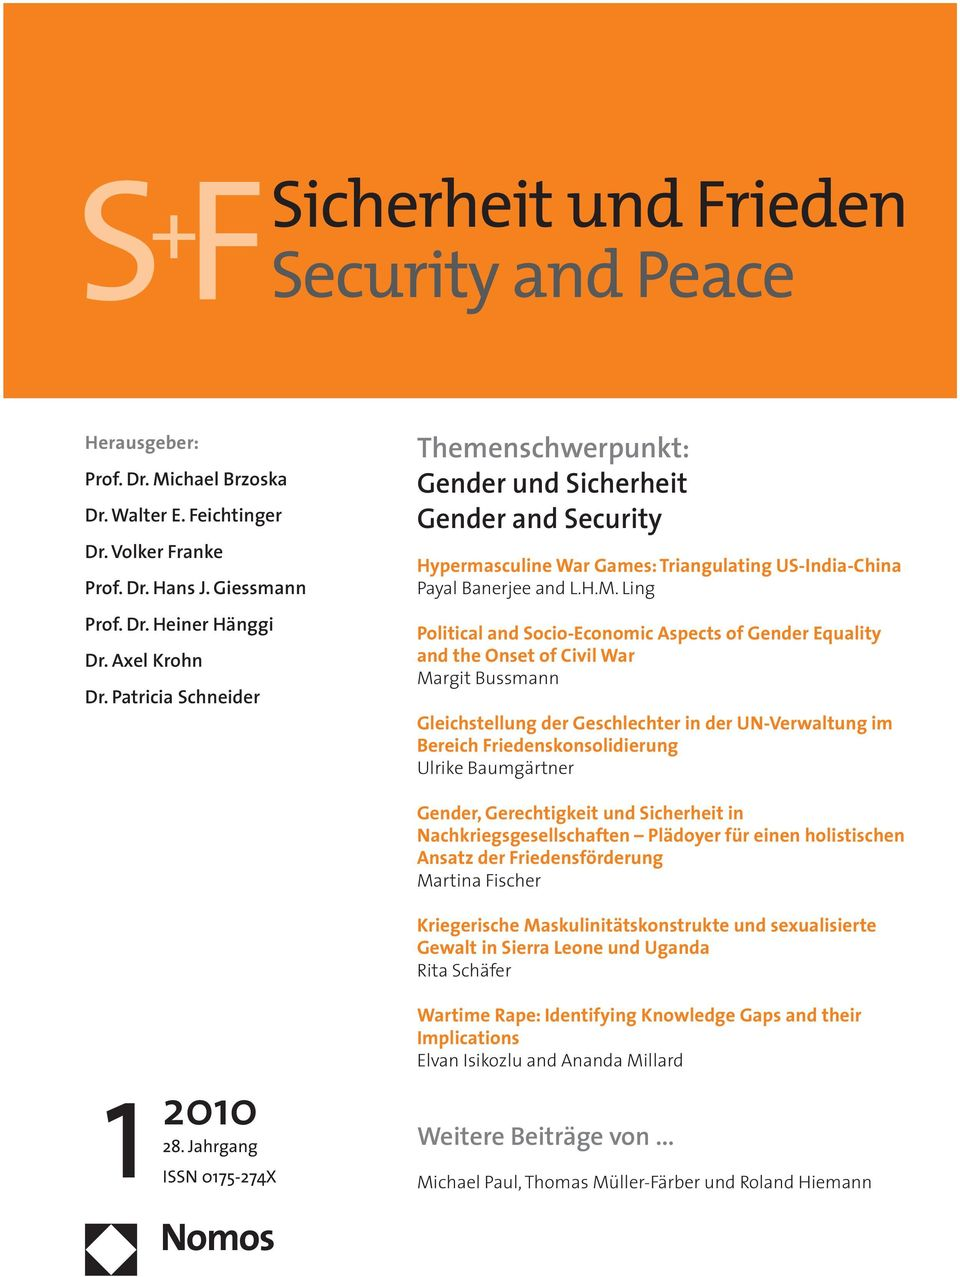 Ling Political and Socio-Economic Aspects of Gender Equality and the Onset of Civil War Margit Bussmann Gleichstellung der Geschlechter in der UN-Verwaltung im Bereich Friedenskonsolidierung Ulrike